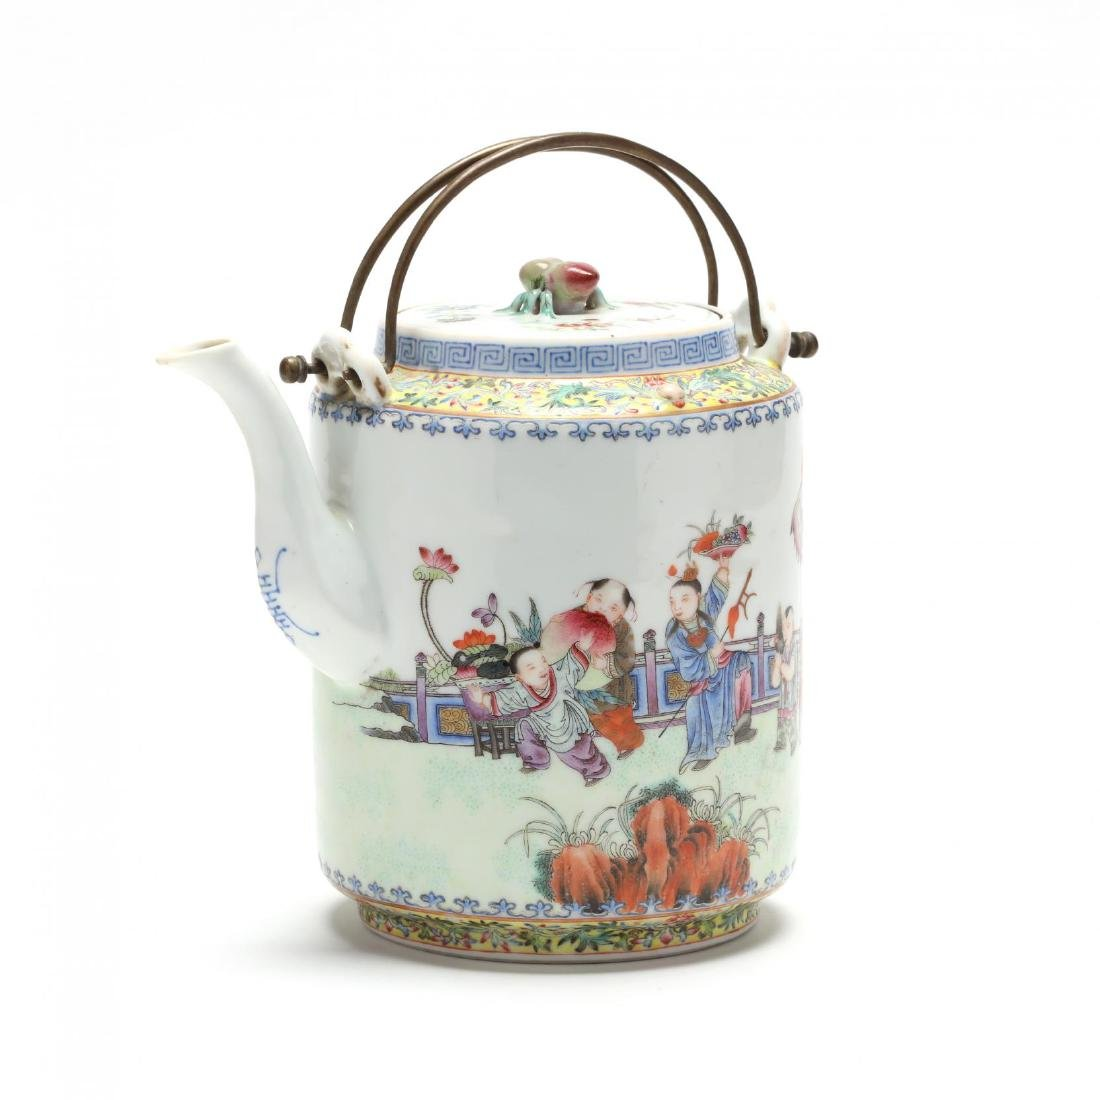 A Chinese Qing Dynasty Porcelain Teapot